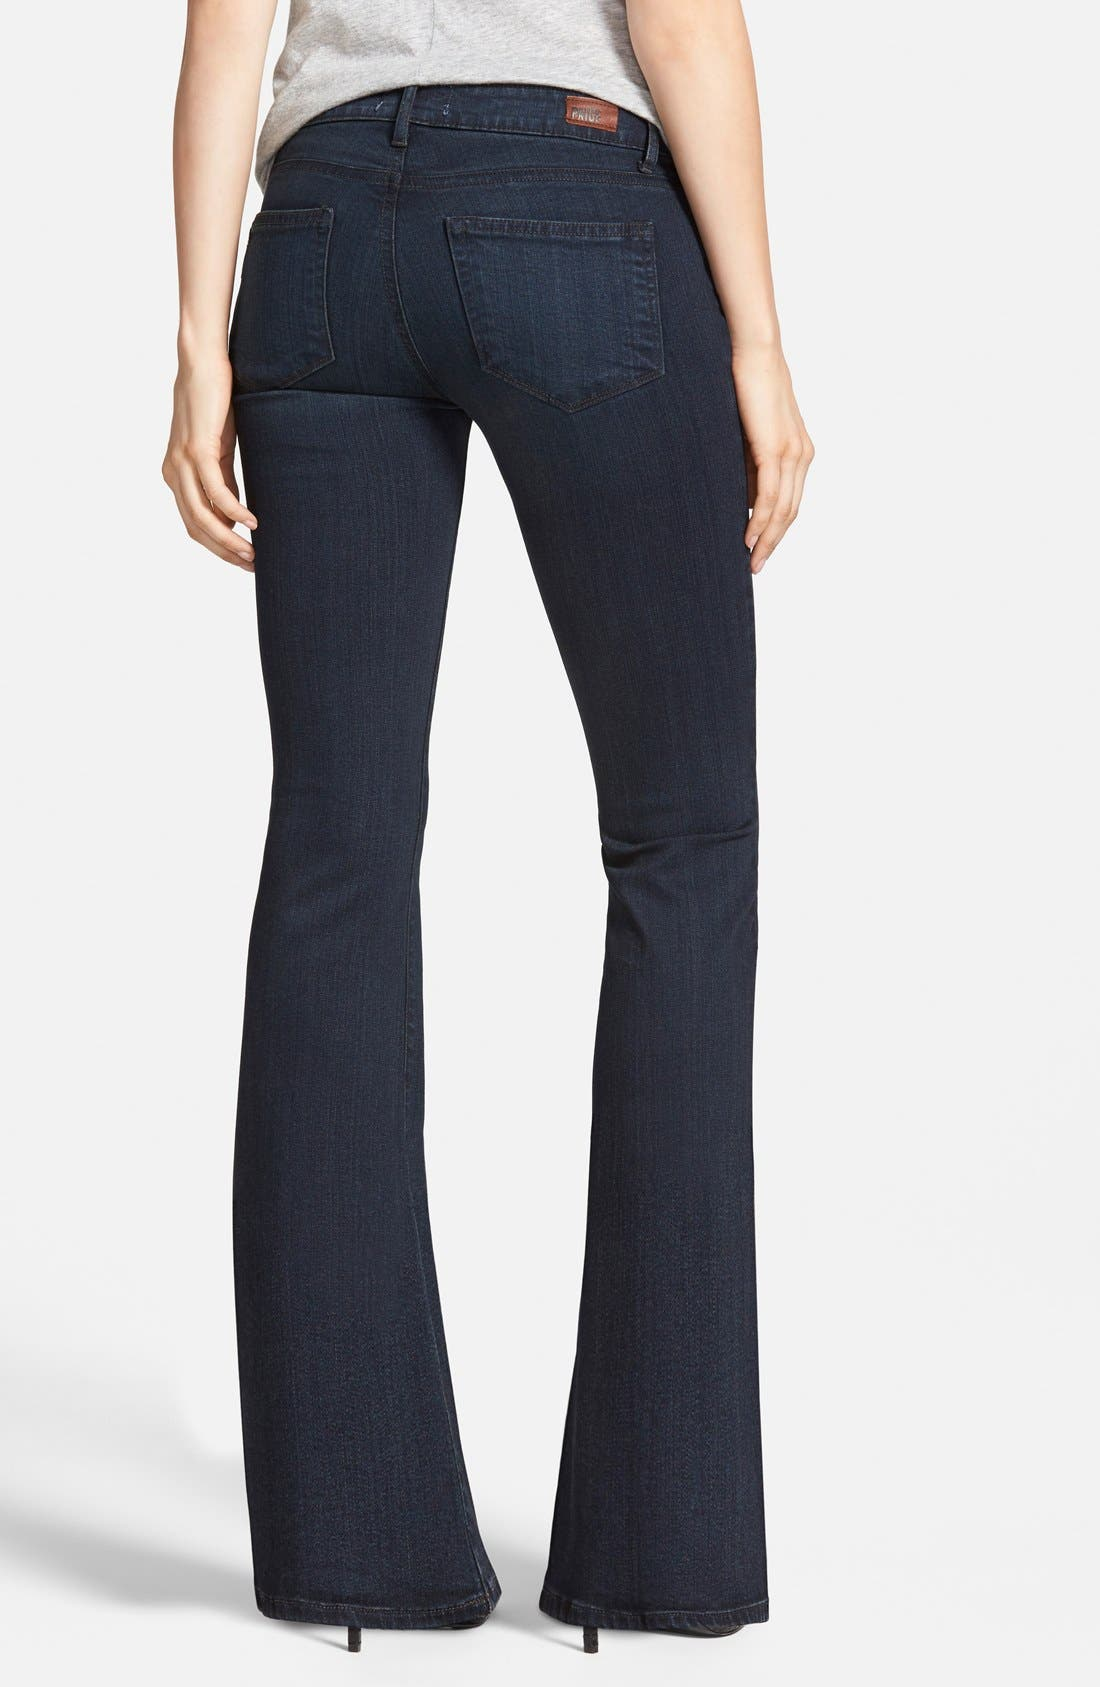 Alternate Image 2  - Paige Denim 'Skyline' Bootcut Jeans (Keely) (Petite) (Nordstrom Exclusive)